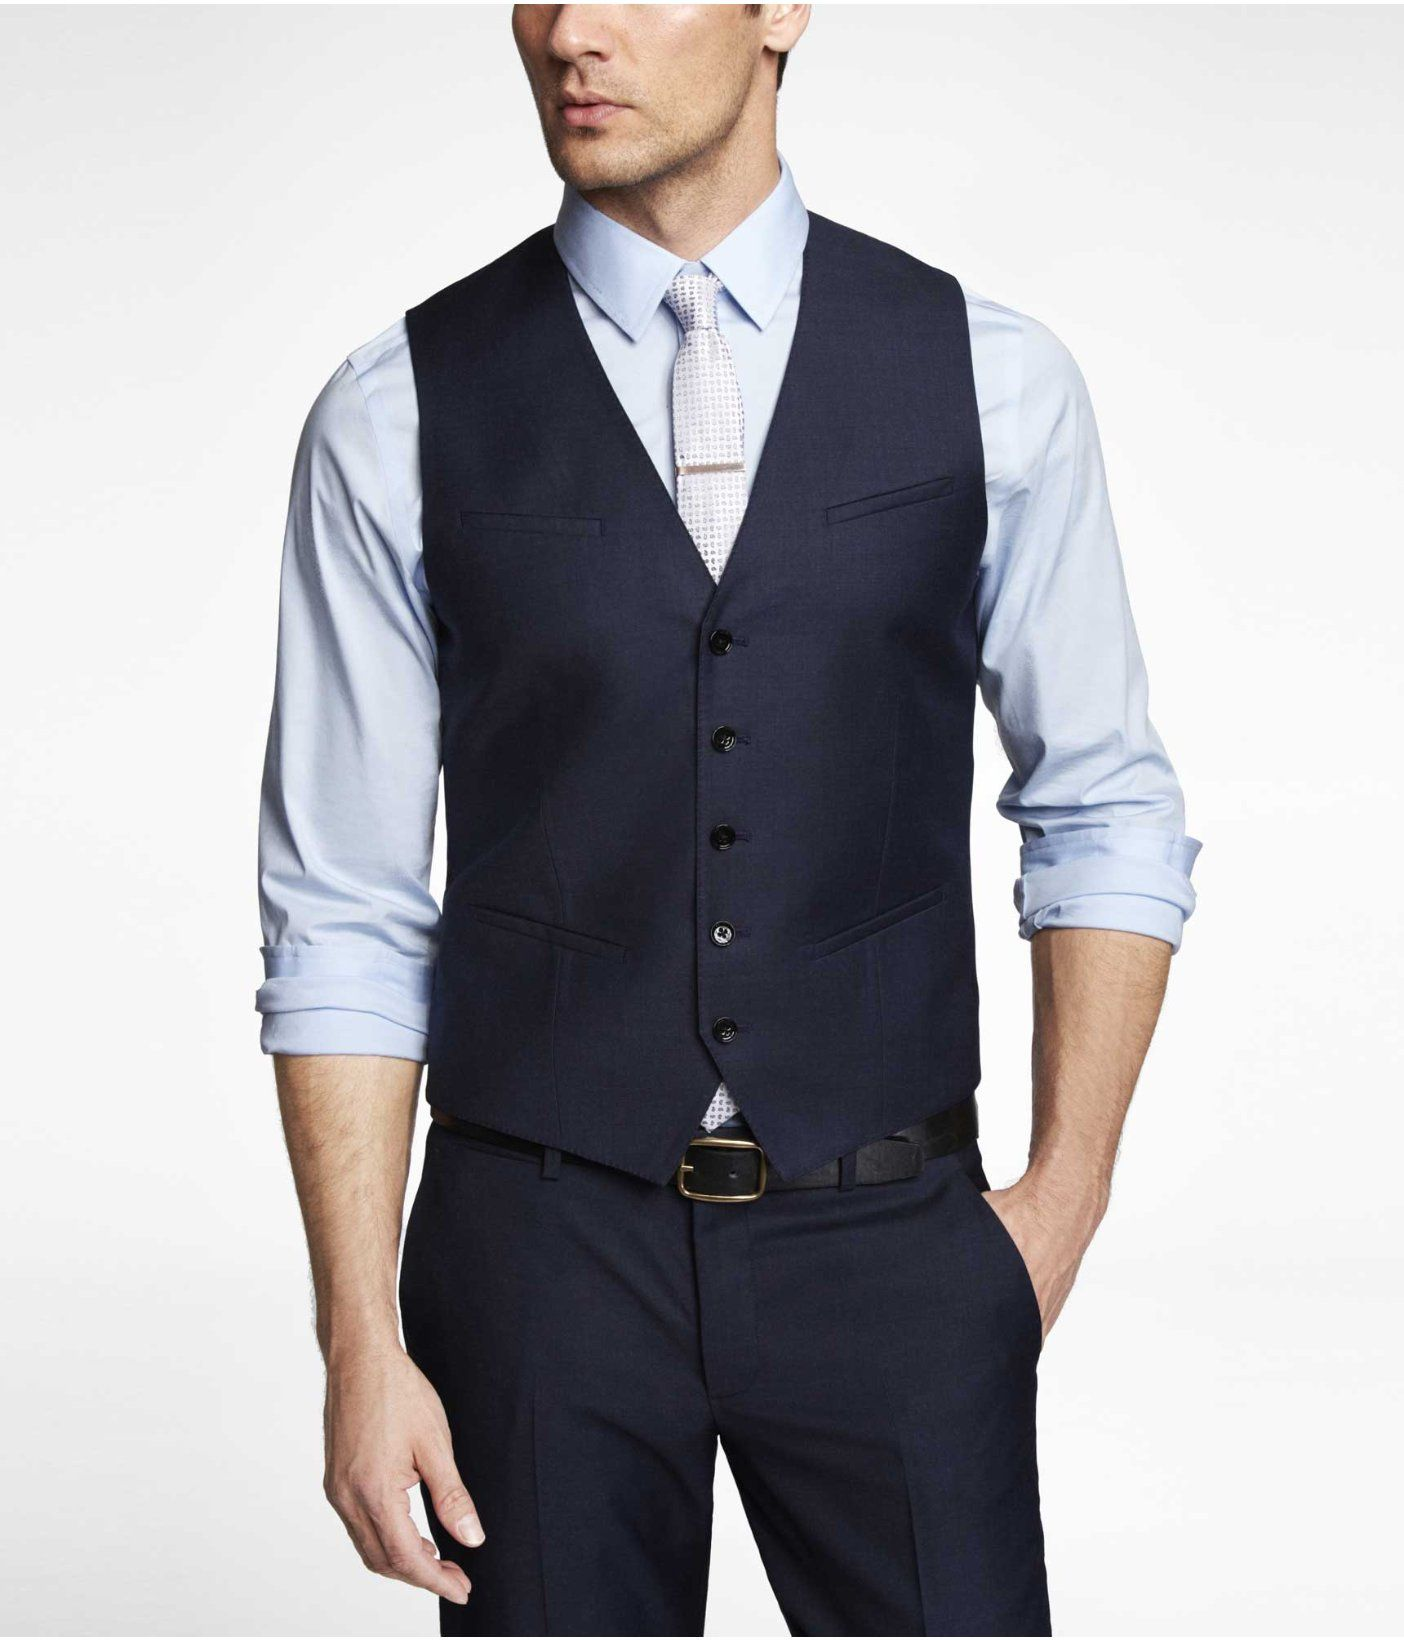 Classic Blue. Can be super formal or pretty casual. I like it.